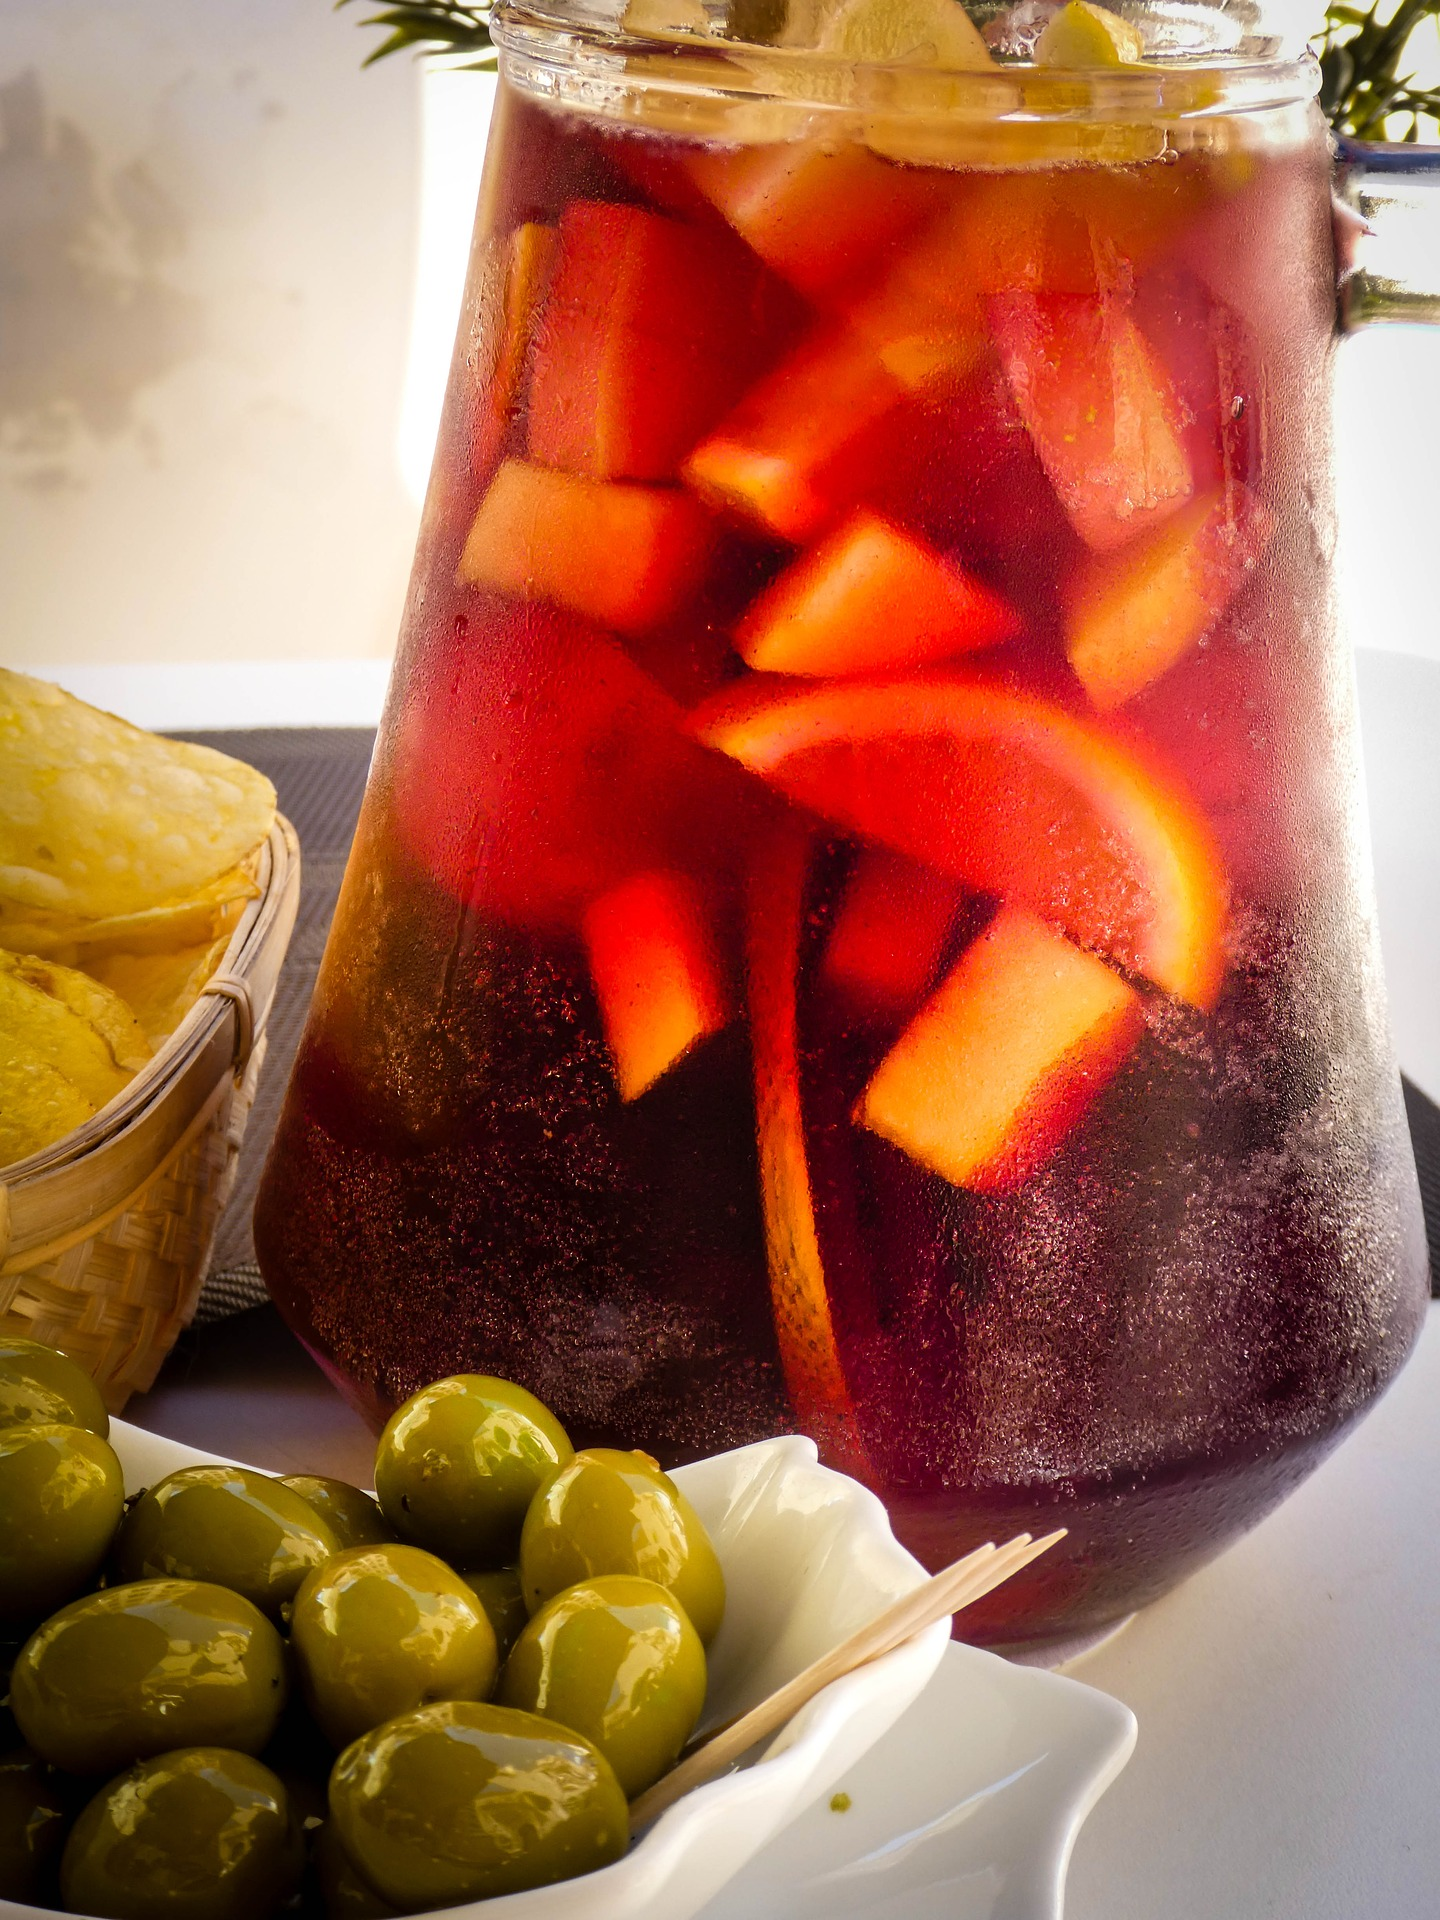 Try this sangria recipe for your next dinner party!